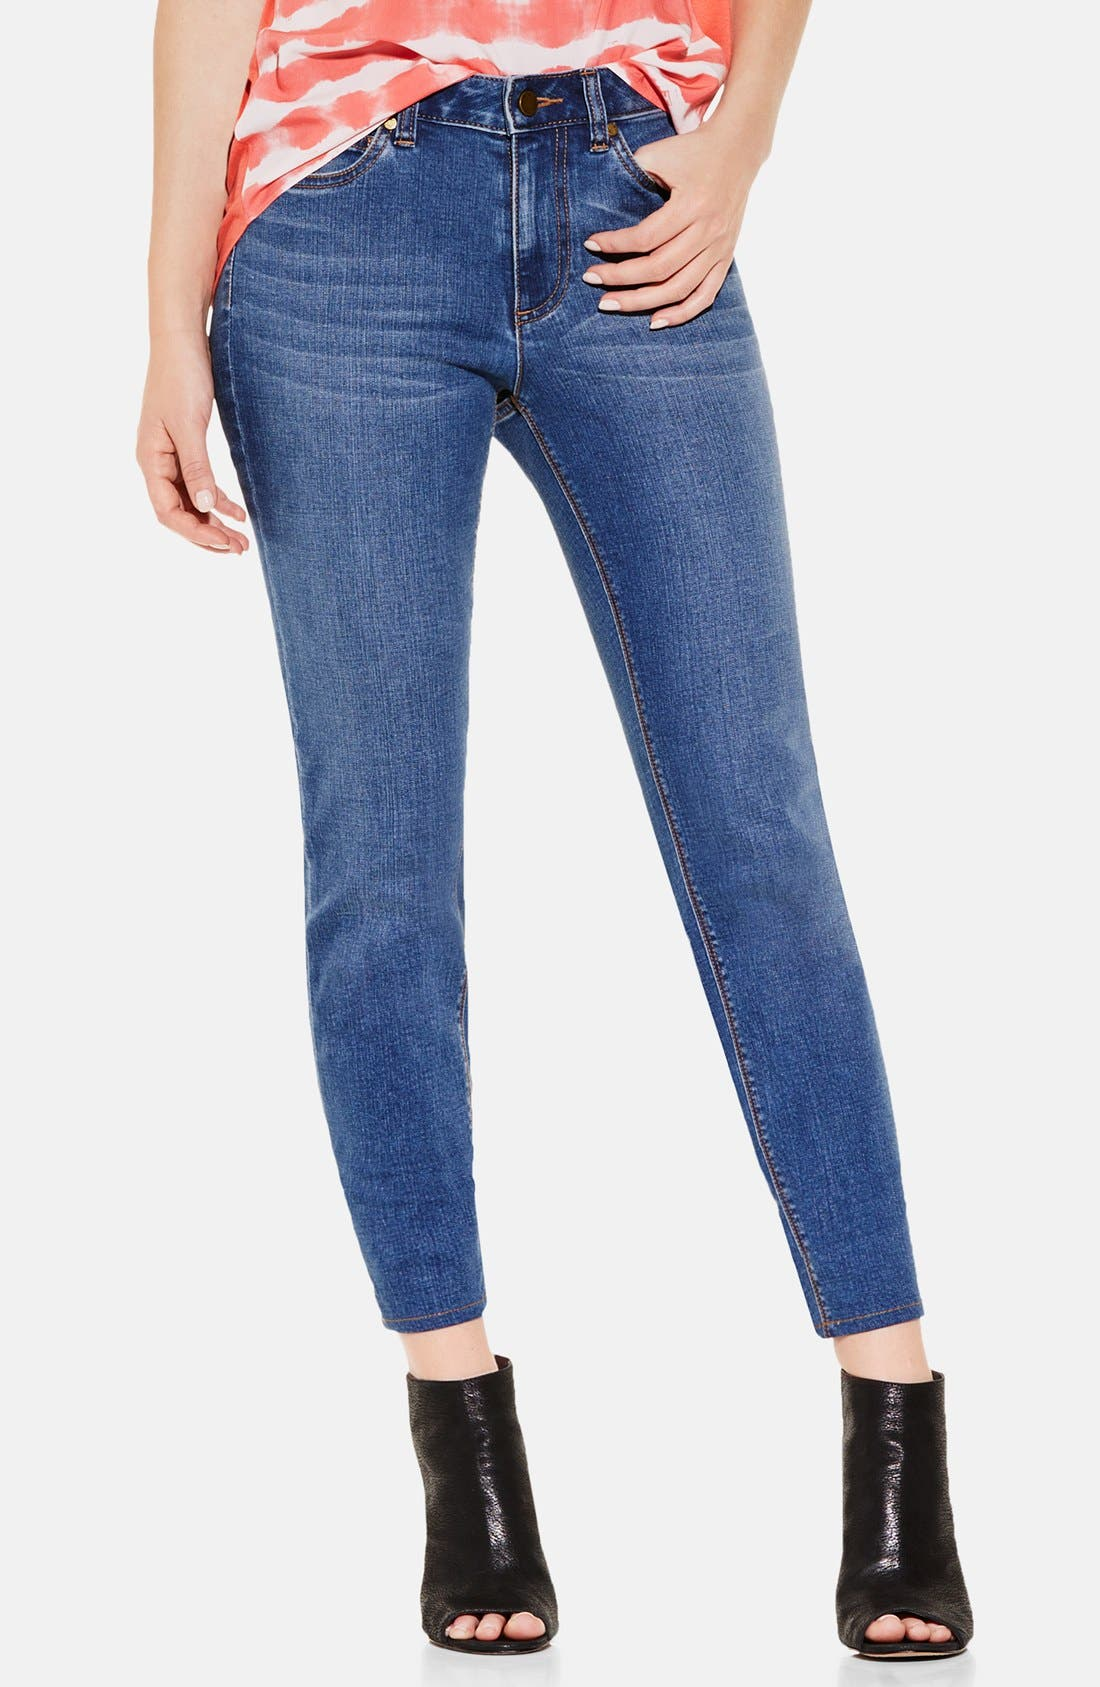 Alternate Image 1 Selected - Two by Vince Camuto Five-Pocket Stretch Skinny Jeans (Authentic)